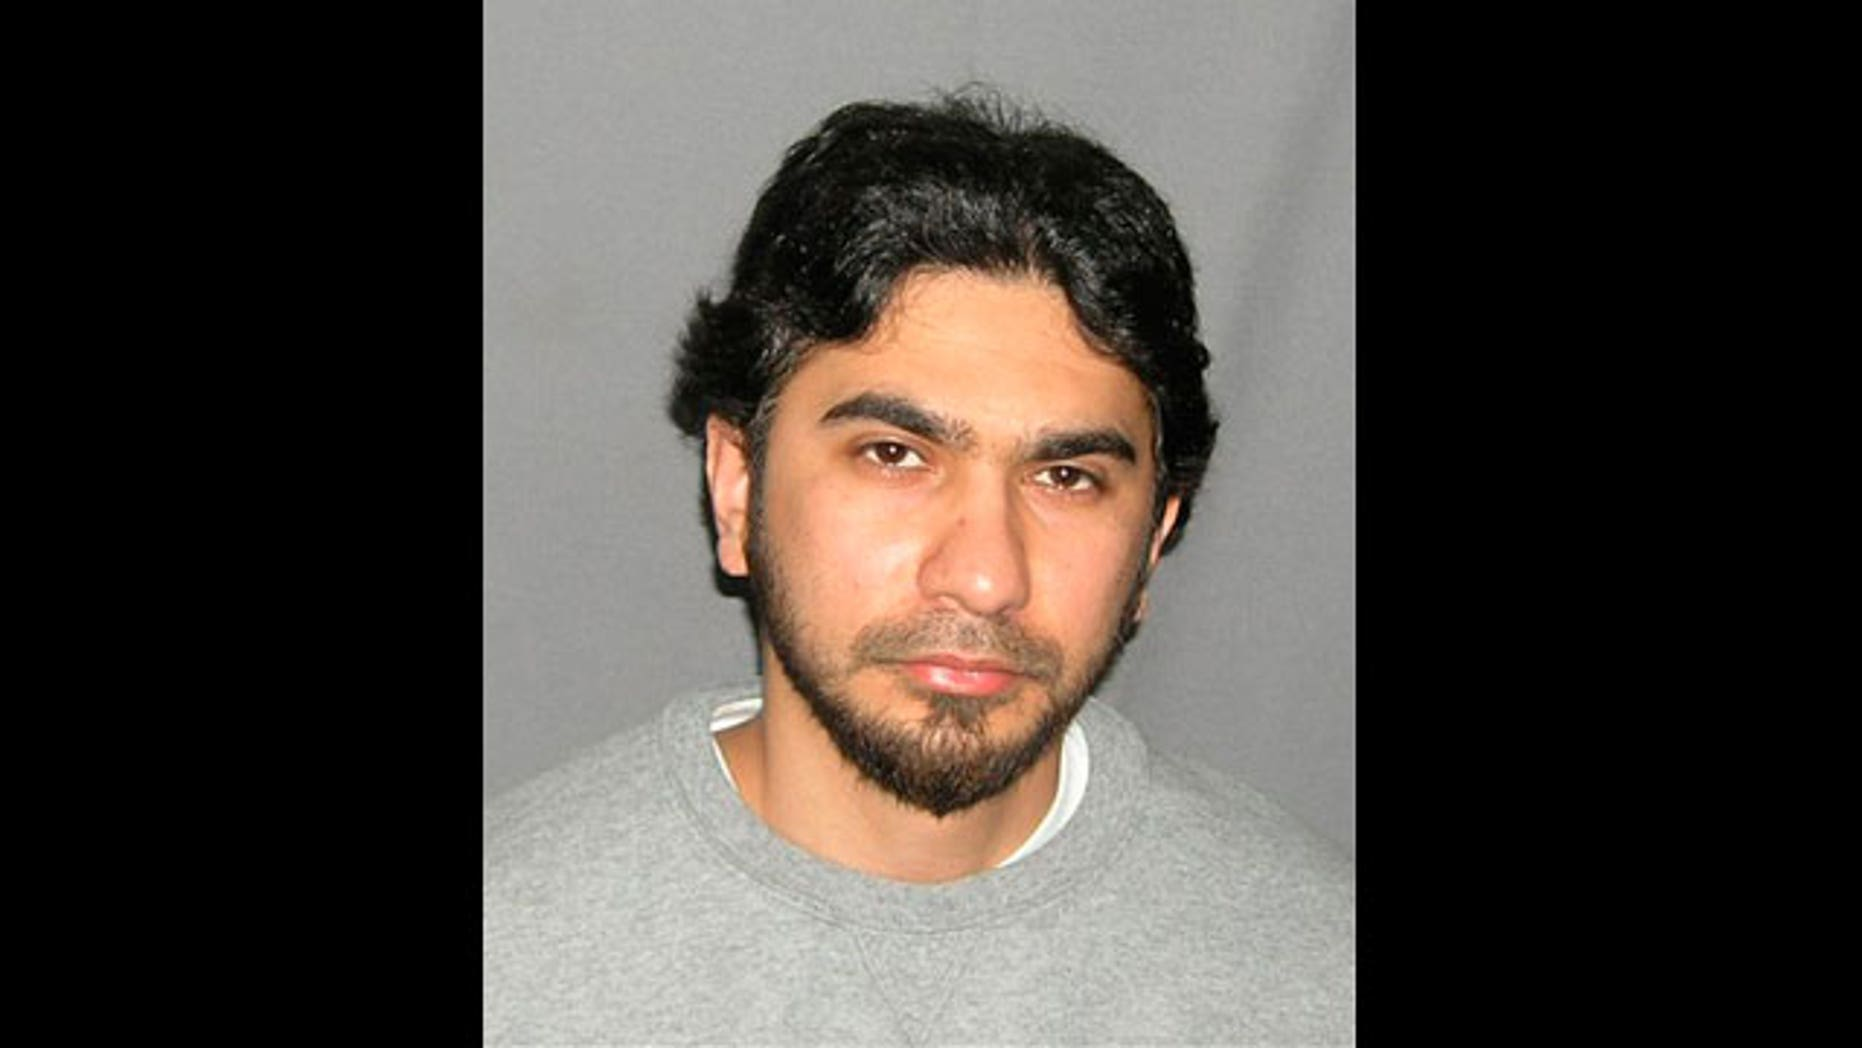 Mug shot of Faisal Shahzad, the man accused of plotting a car bombing in New York's Times Square.